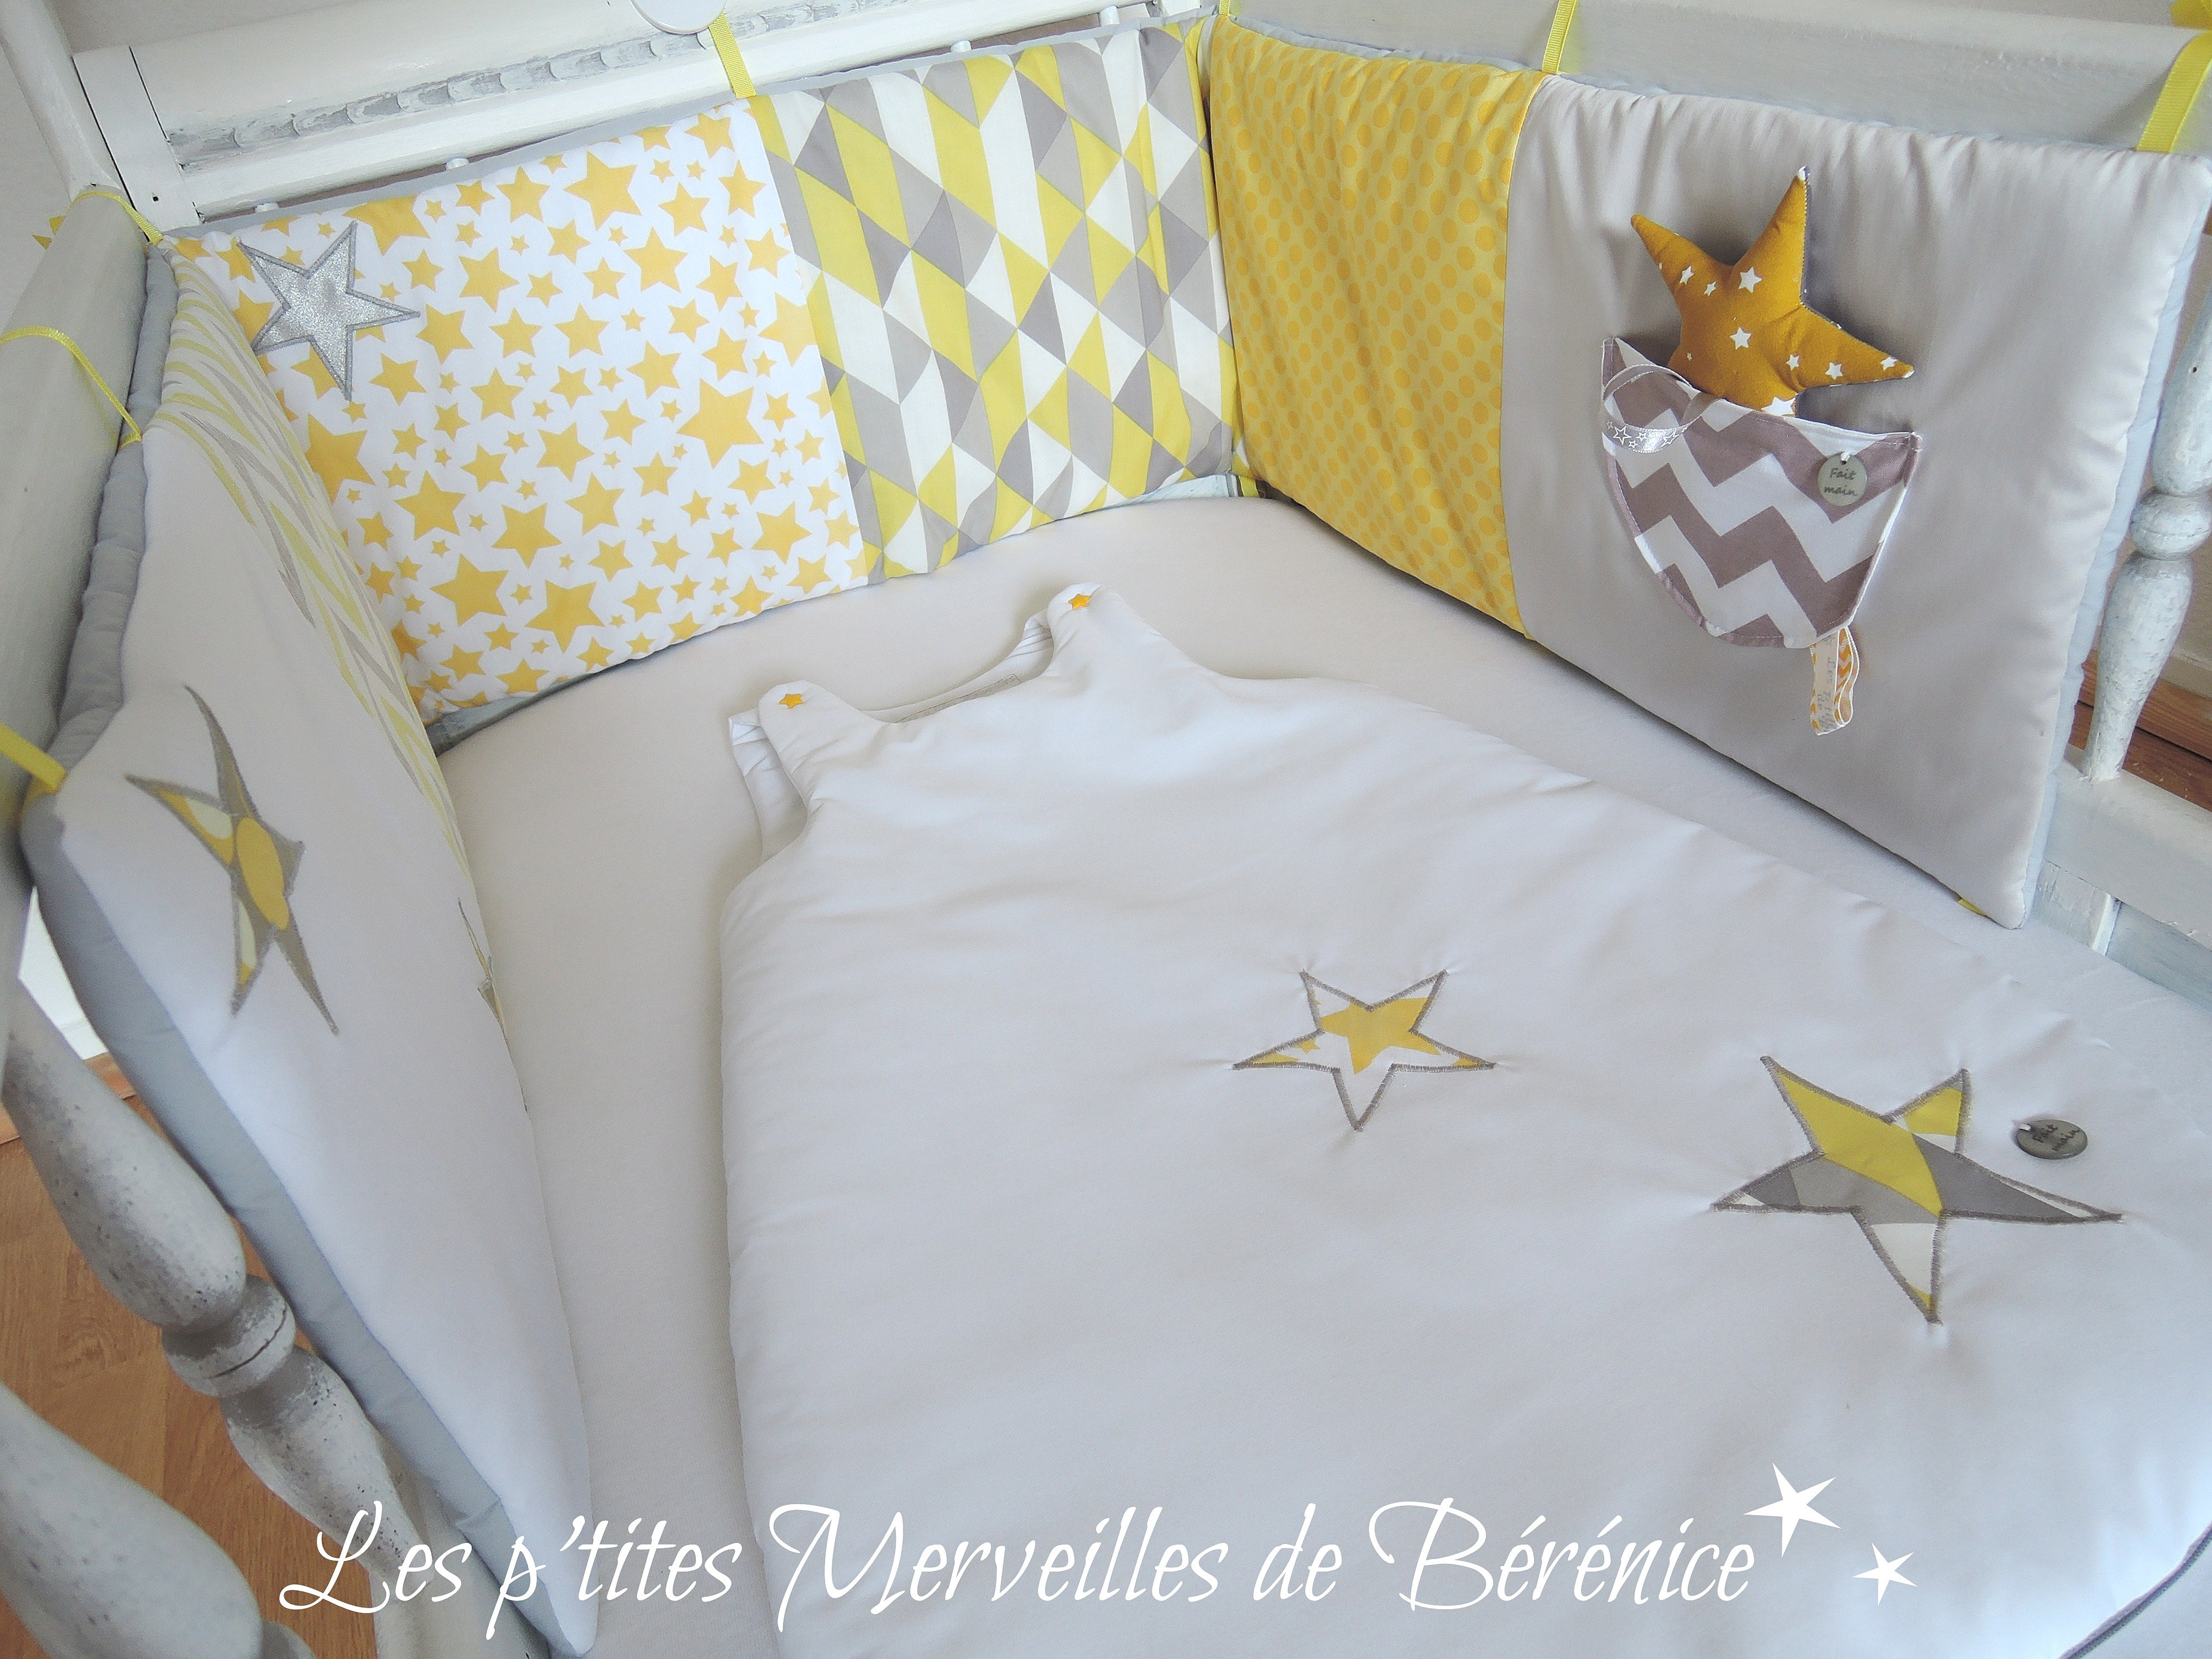 les p 39 tites merveilles de b r nice tour de lit gigoteuse motifs g om triques blanc jaune gris. Black Bedroom Furniture Sets. Home Design Ideas